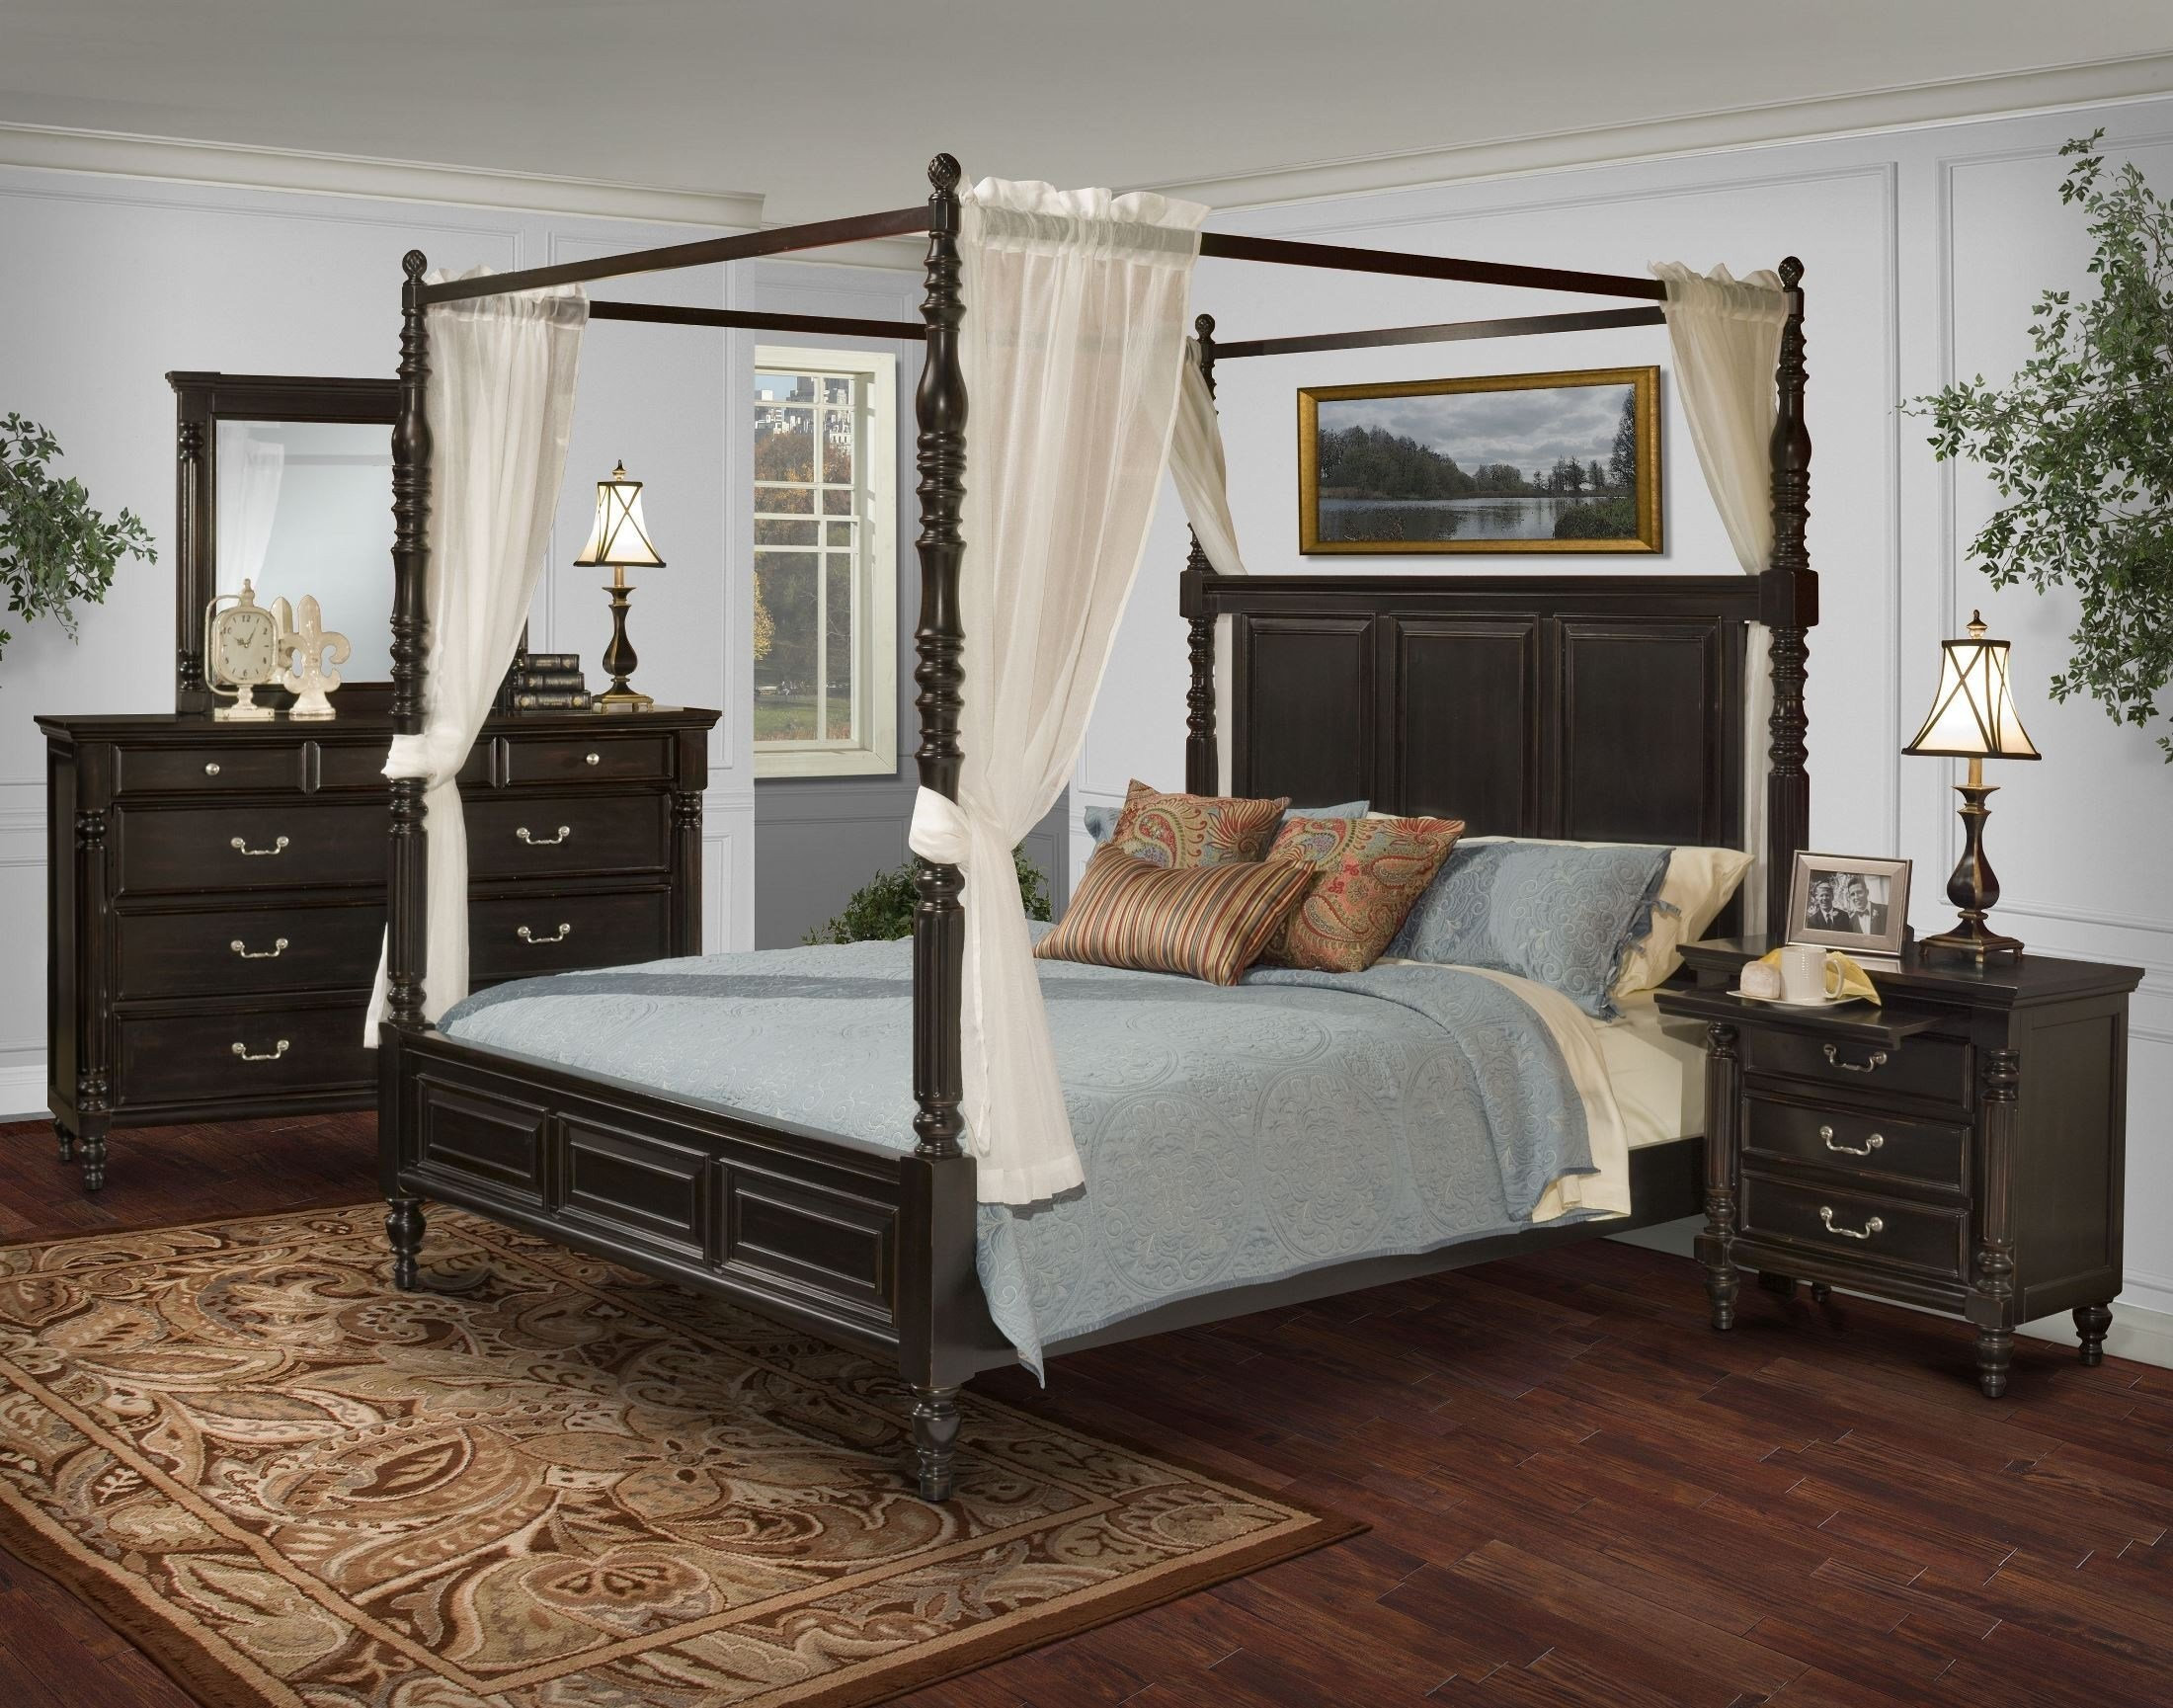 Best Martinique Rubbed Black Canopy Bedroom Set With Drapes With Pictures